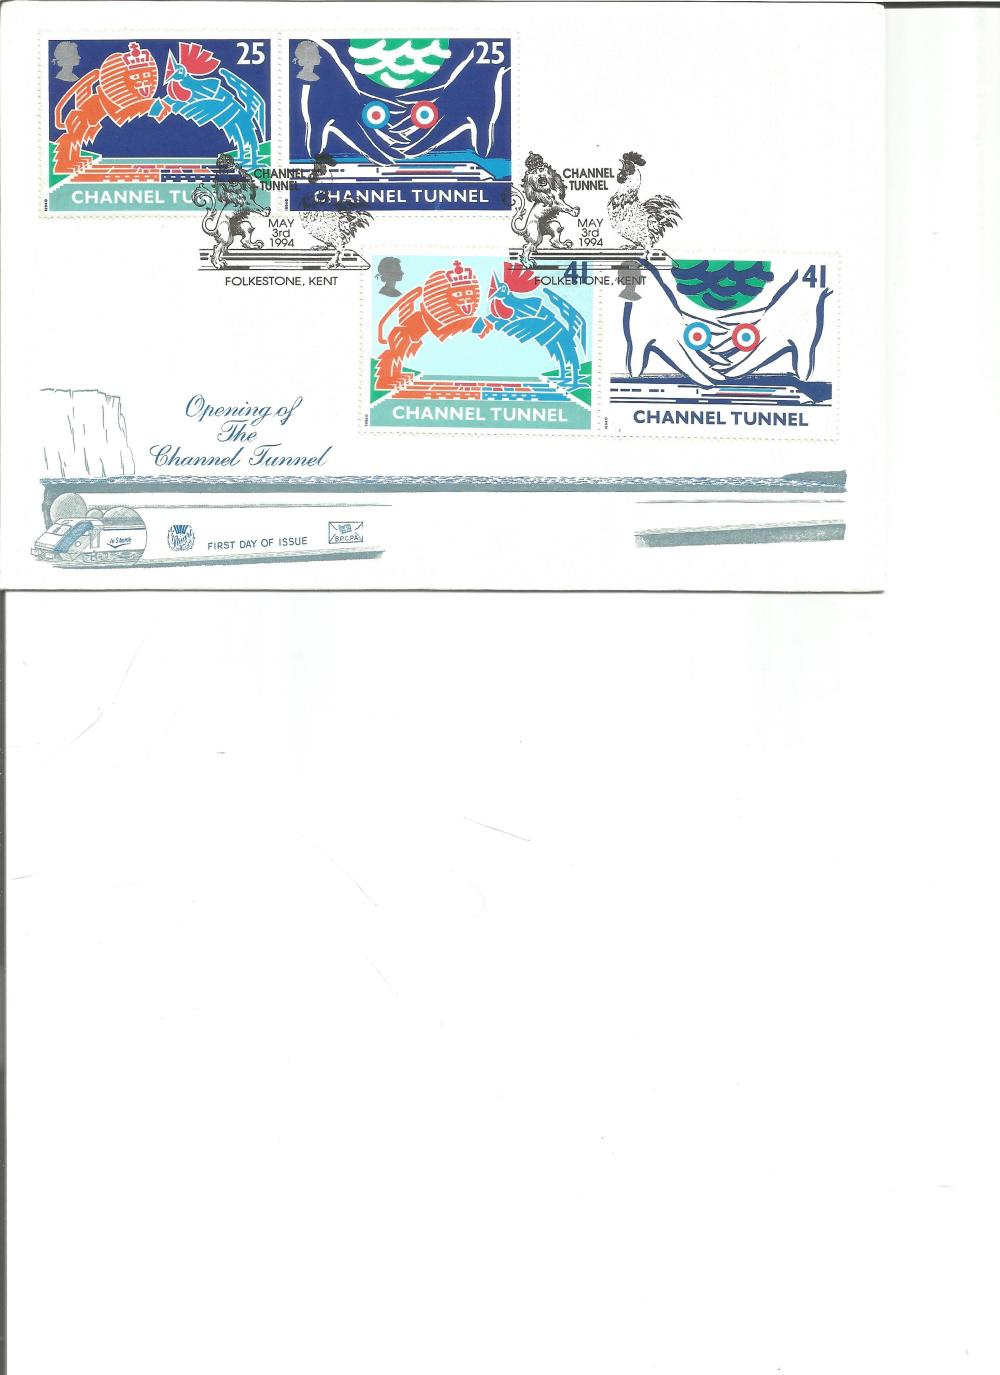 FDC Opening of the Channel Tunnel c/w set of four commemorative stamps double PM Channel Tunnel